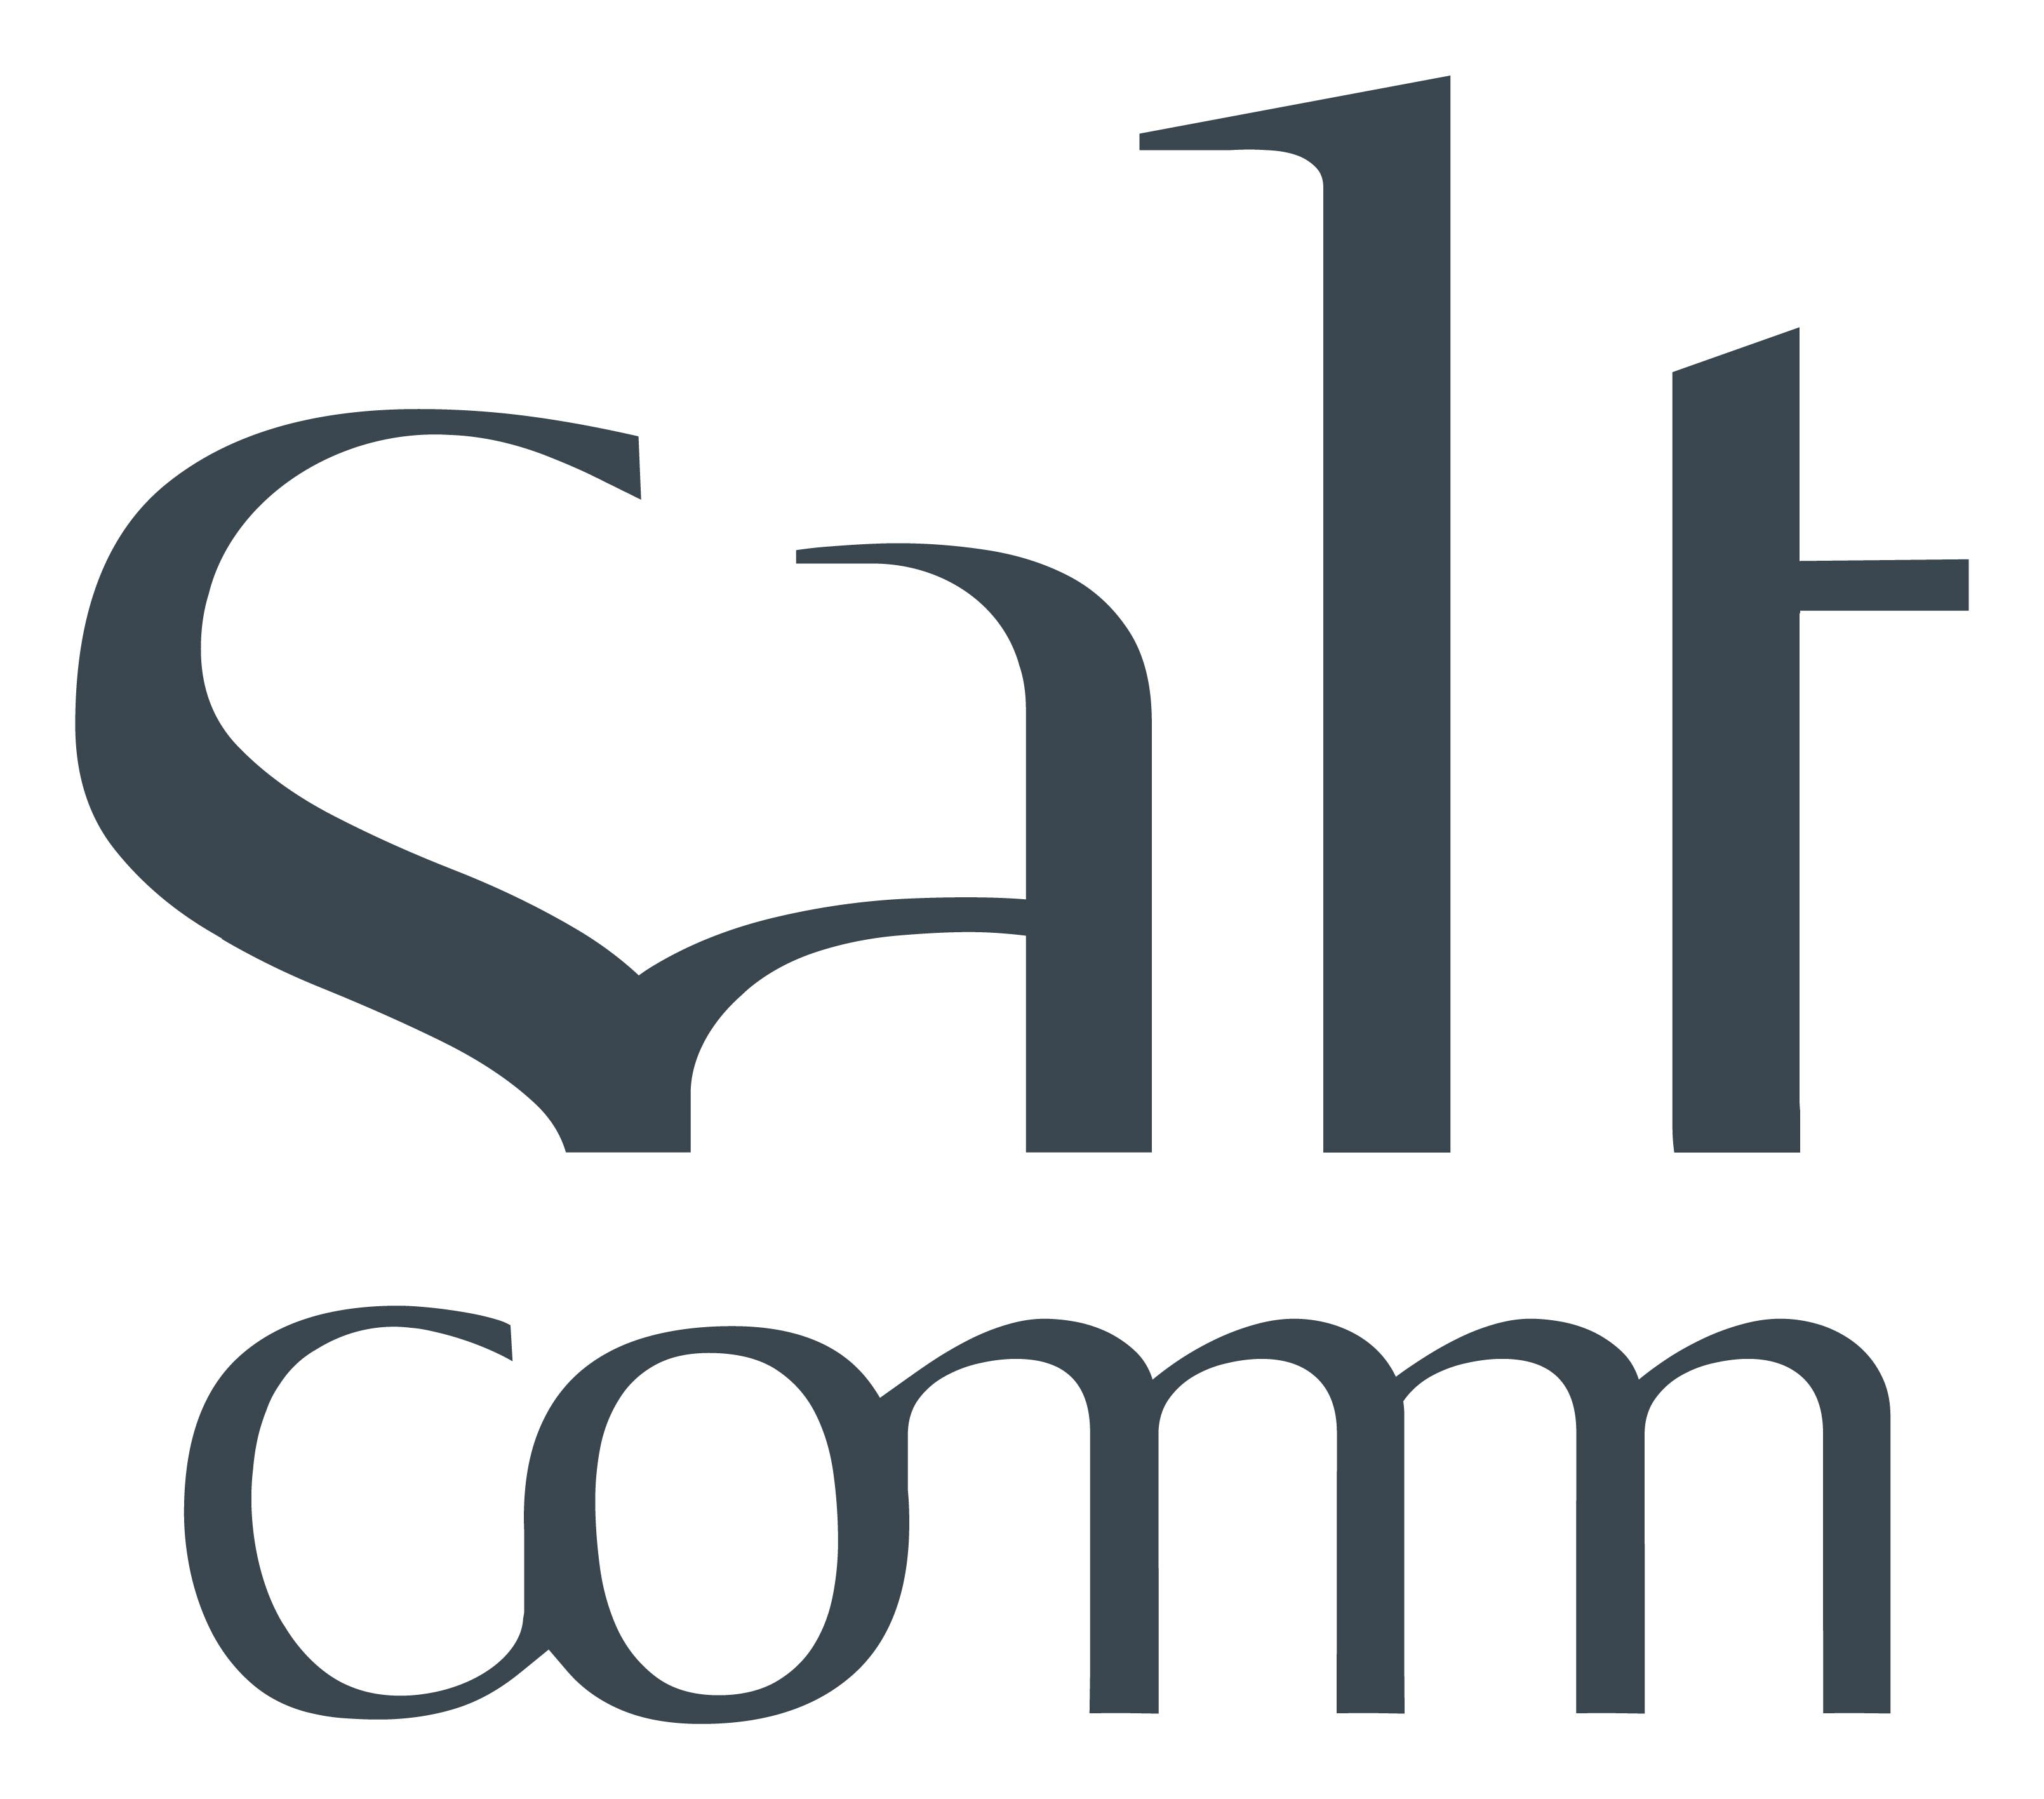 Salt Communications